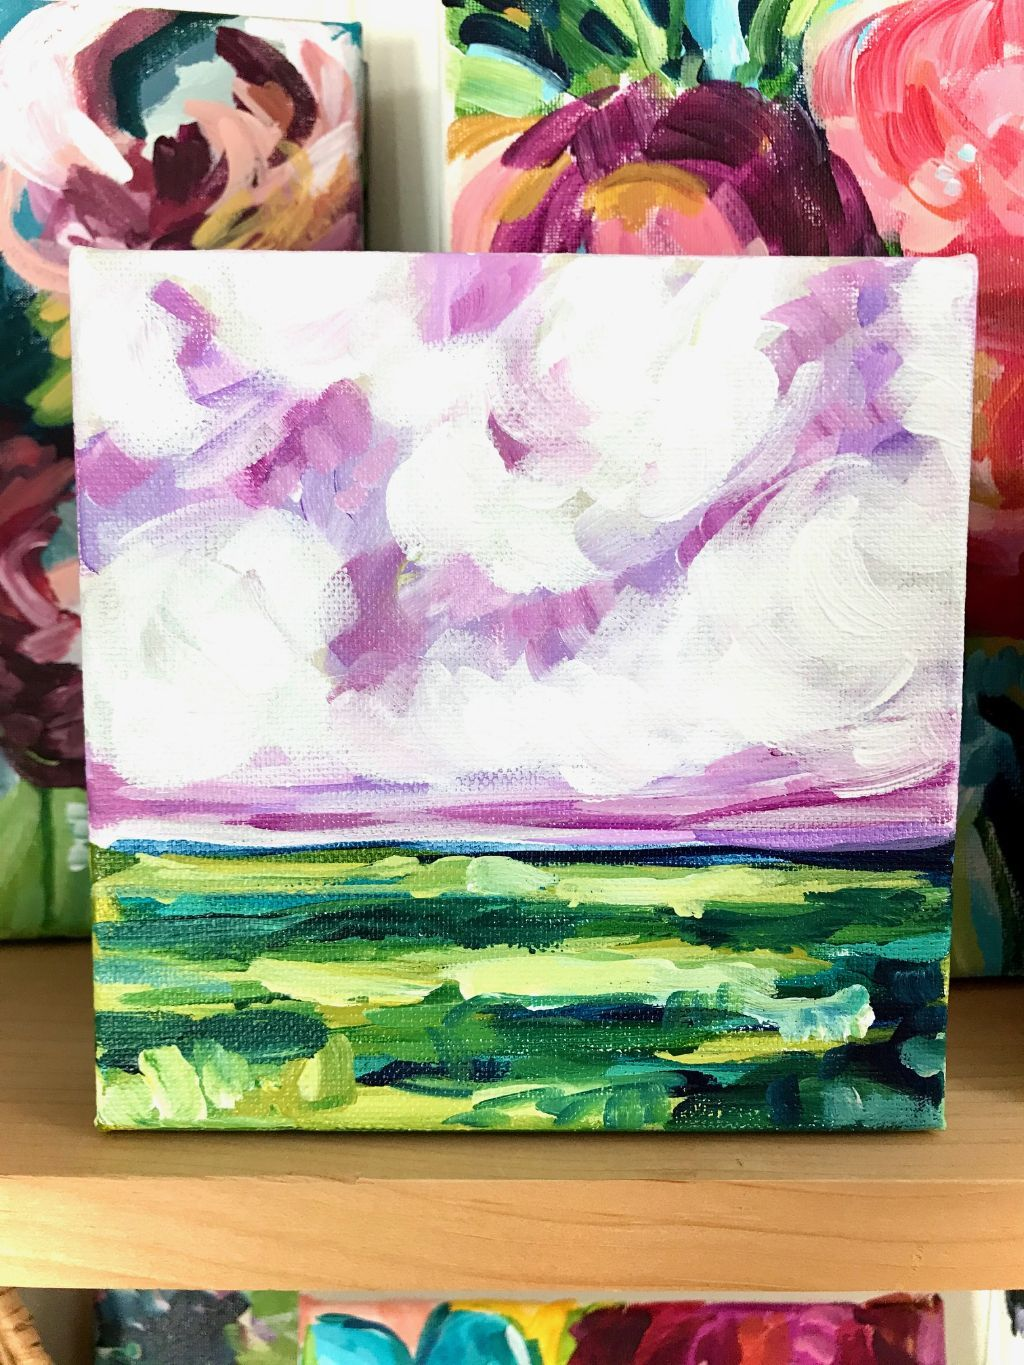 Easy Landscape Painting Step By Step How To Paint A Landscape With Acrylic Paint On Canvas De In 2020 Purple Paintings Canvas Easy Landscape Paintings Purple Painting